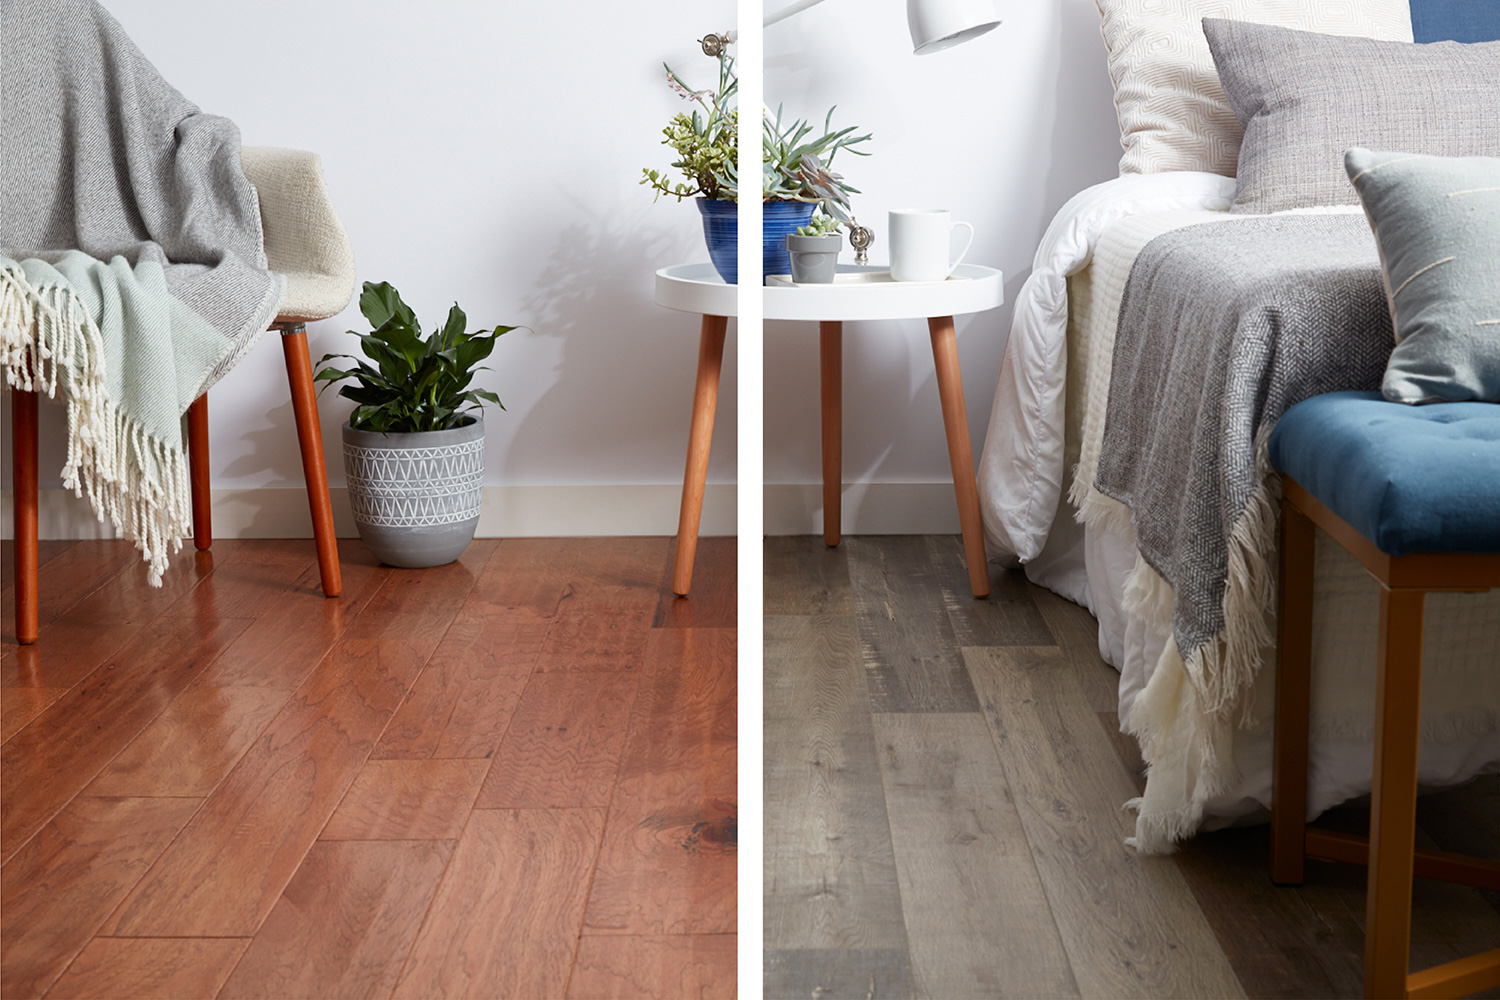 laminate-vs-engineered-wood-flooring-comparison-1822247_hero_0269